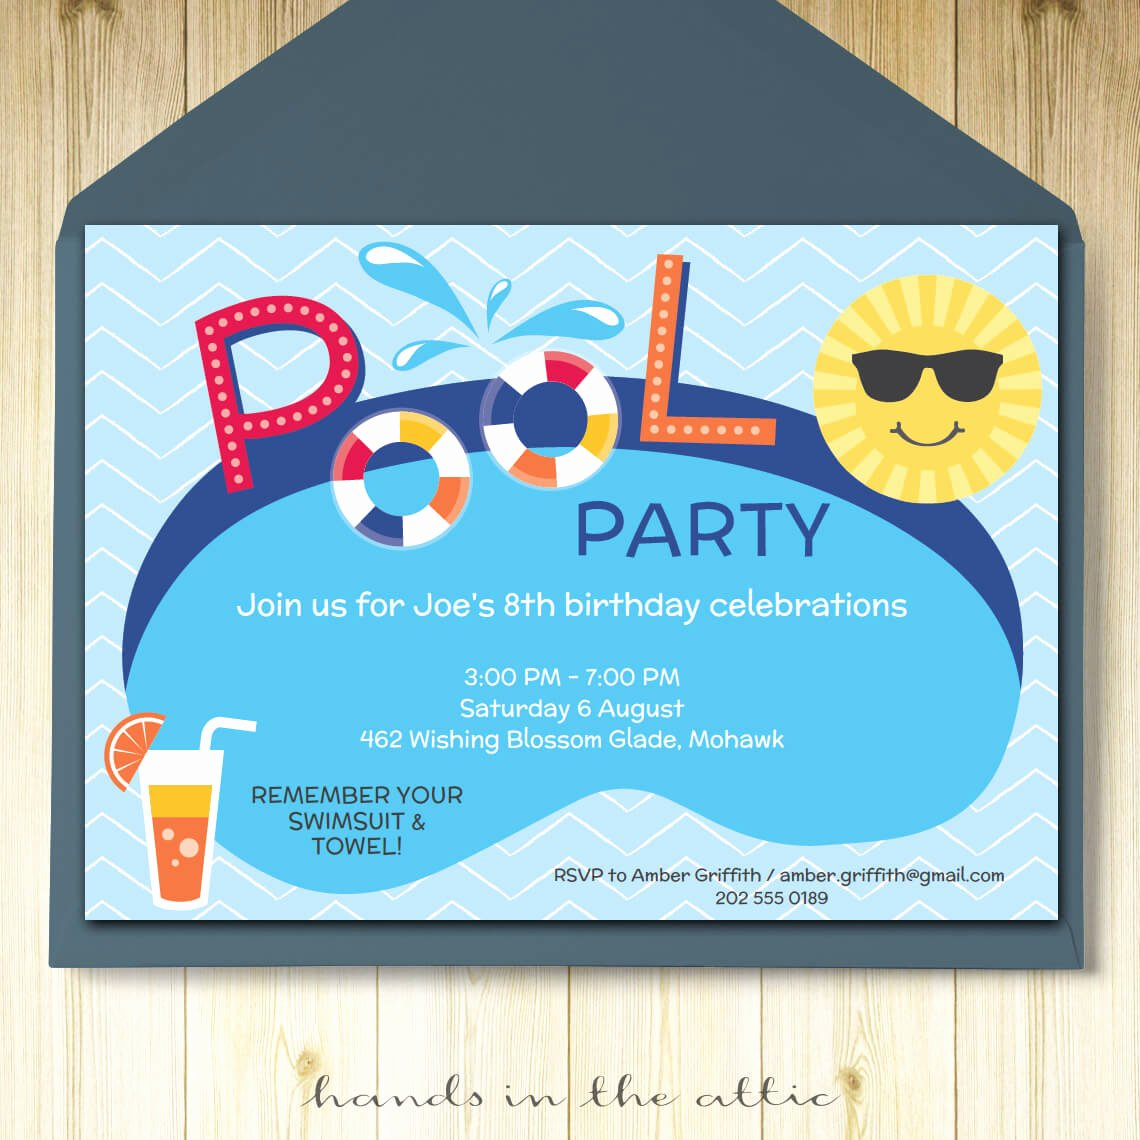 Pool Party Invite Template Elegant Pool Party Invitation Printable Template